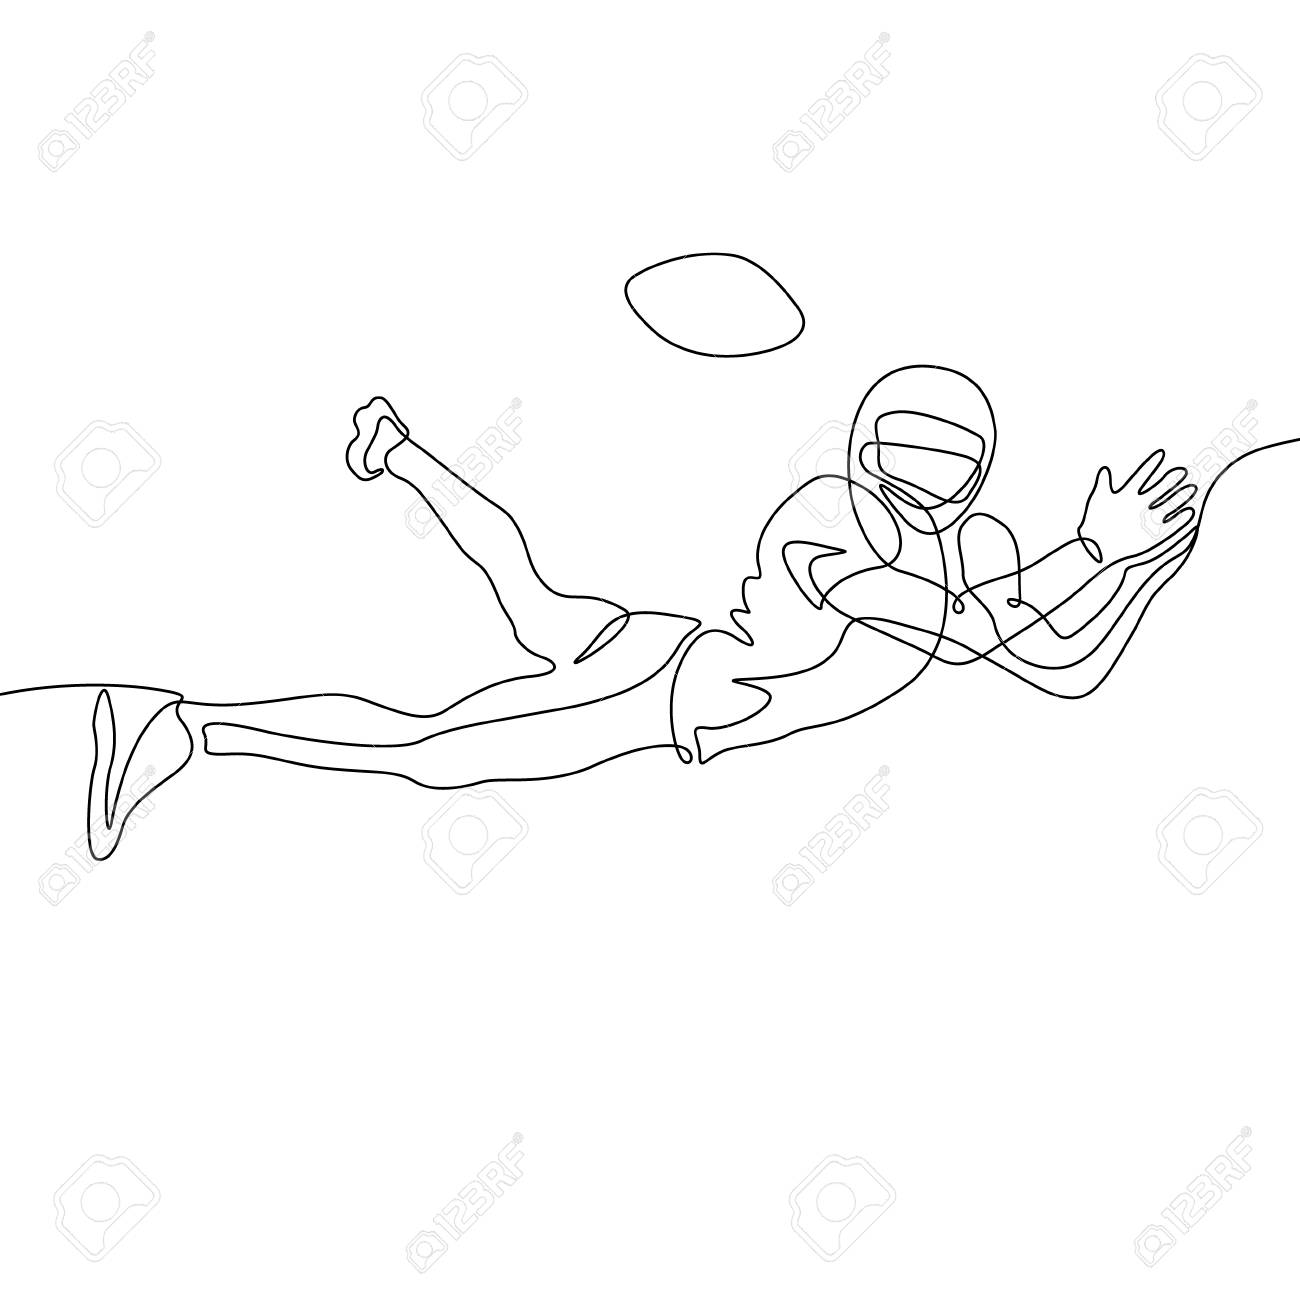 Continuous One Line Drawing American Football Player Jump To